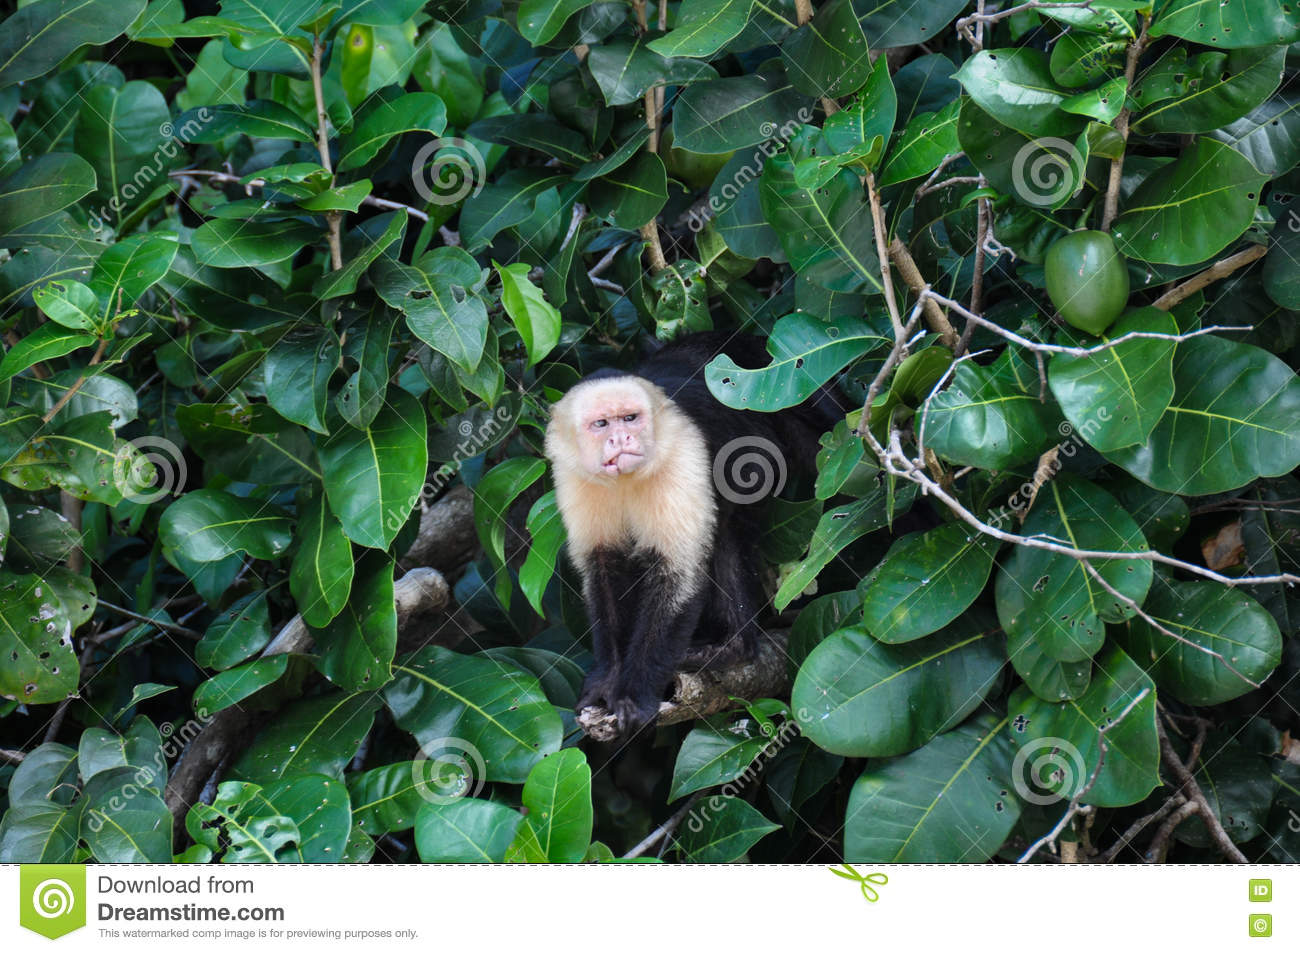 White Faced Capuchin Monkey in Manuel Antonio National Park, Cos